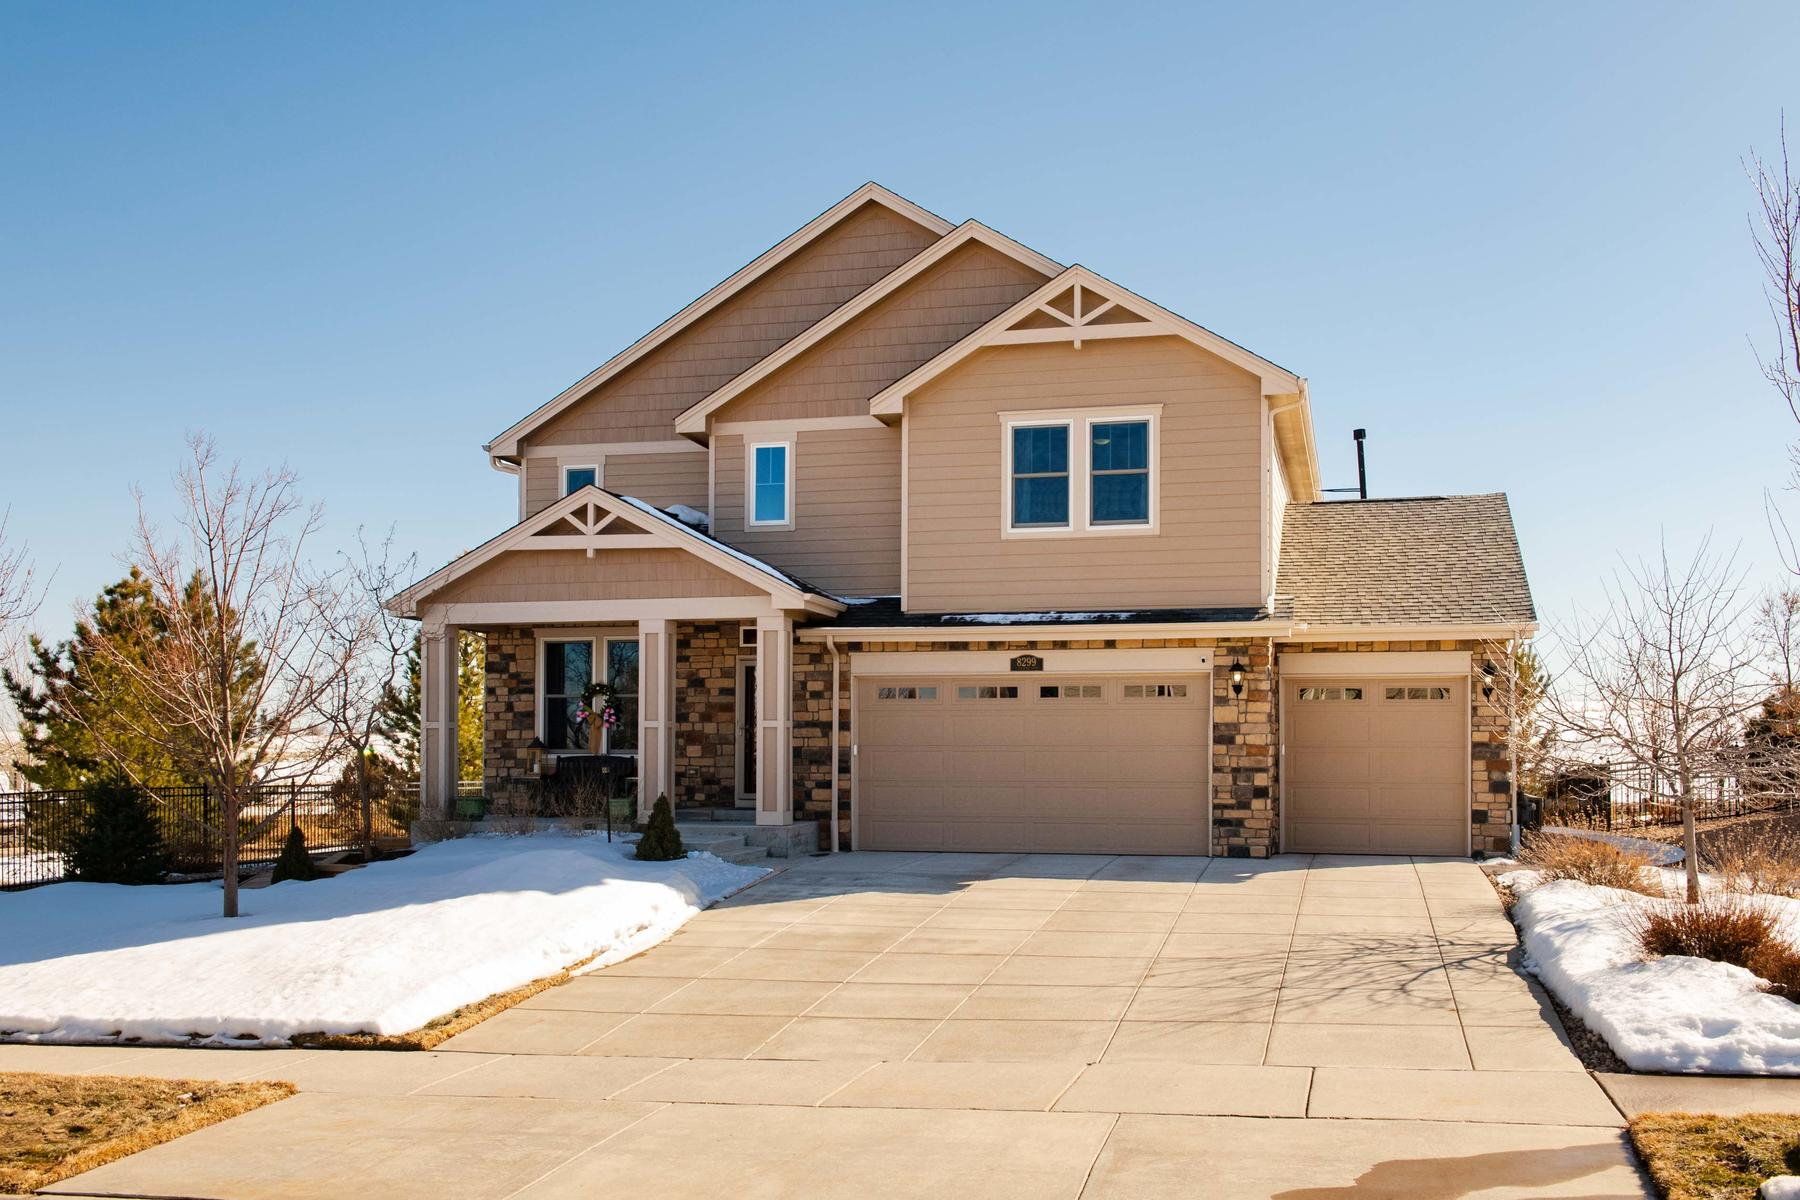 Single Family Homes for Sale at Now is Your Chance to Live in Coveted Blackstone Country Club 8299 S Country Club Parkway, Aurora, Colorado 80016 United States